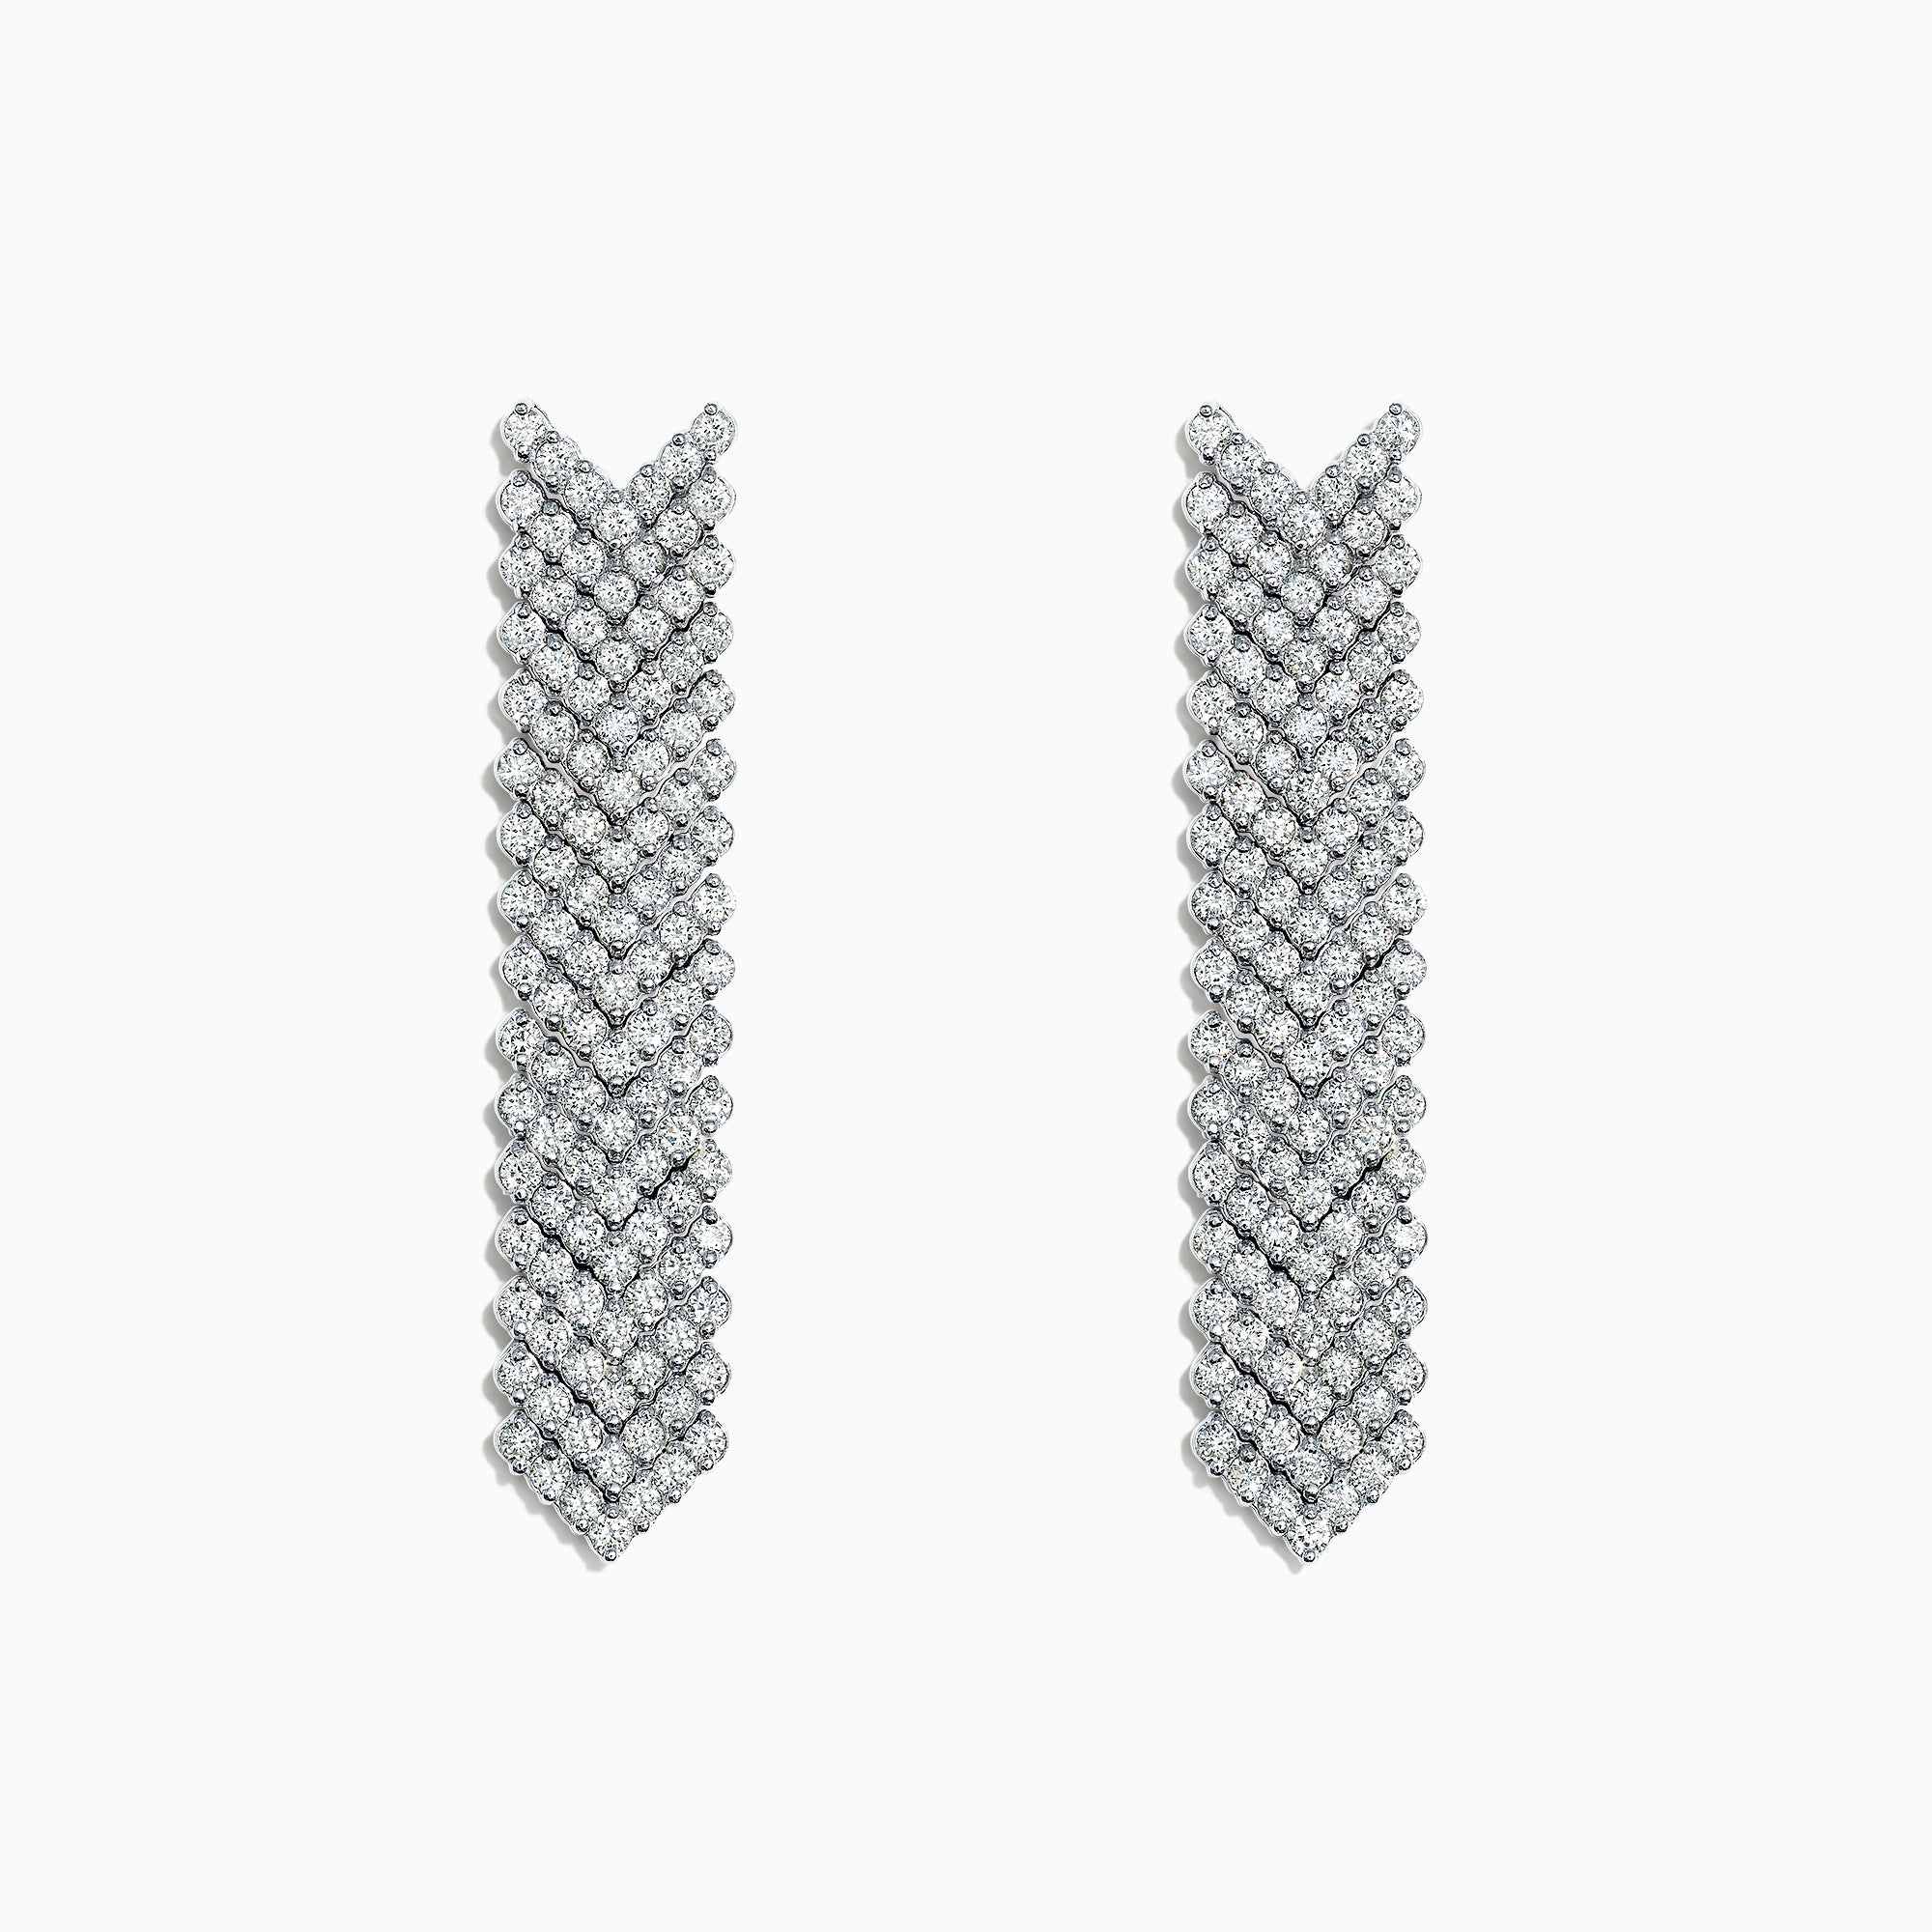 Effy Pave Classica 14K White Gold Diamond Drop Earrings, 2.74 TCW